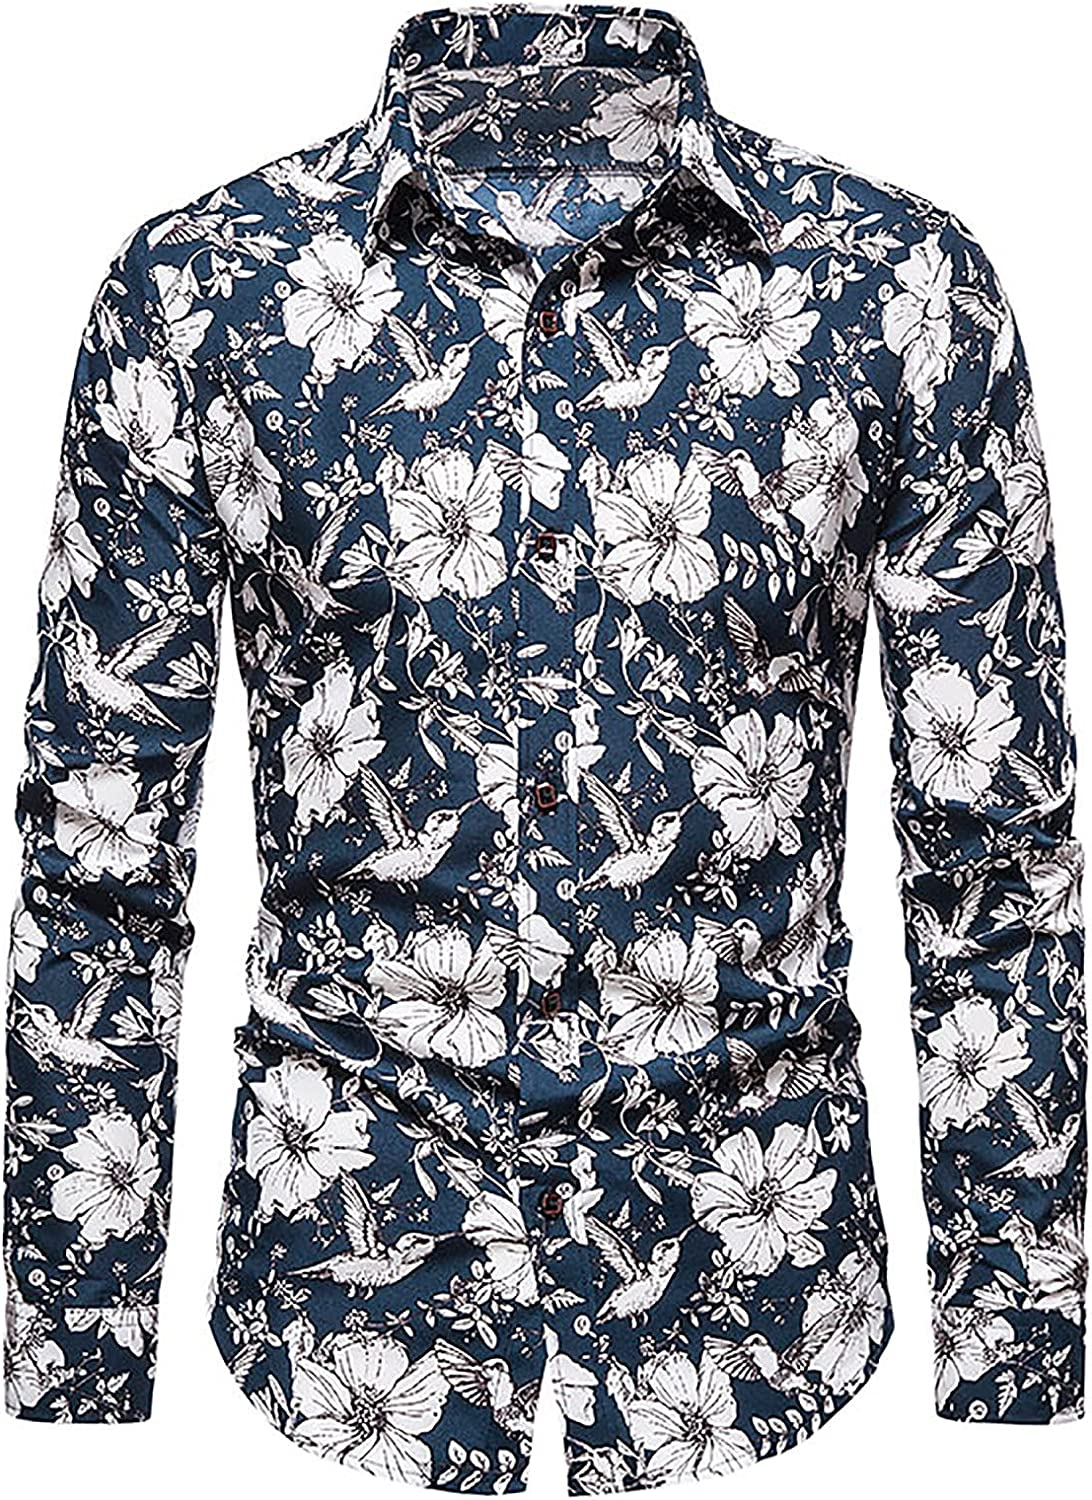 Men's Fashion Floral Print Shirts Cotton Turn Down Collar Button Long Sleeve Shirt Slim Fit Casual Tops Blouse